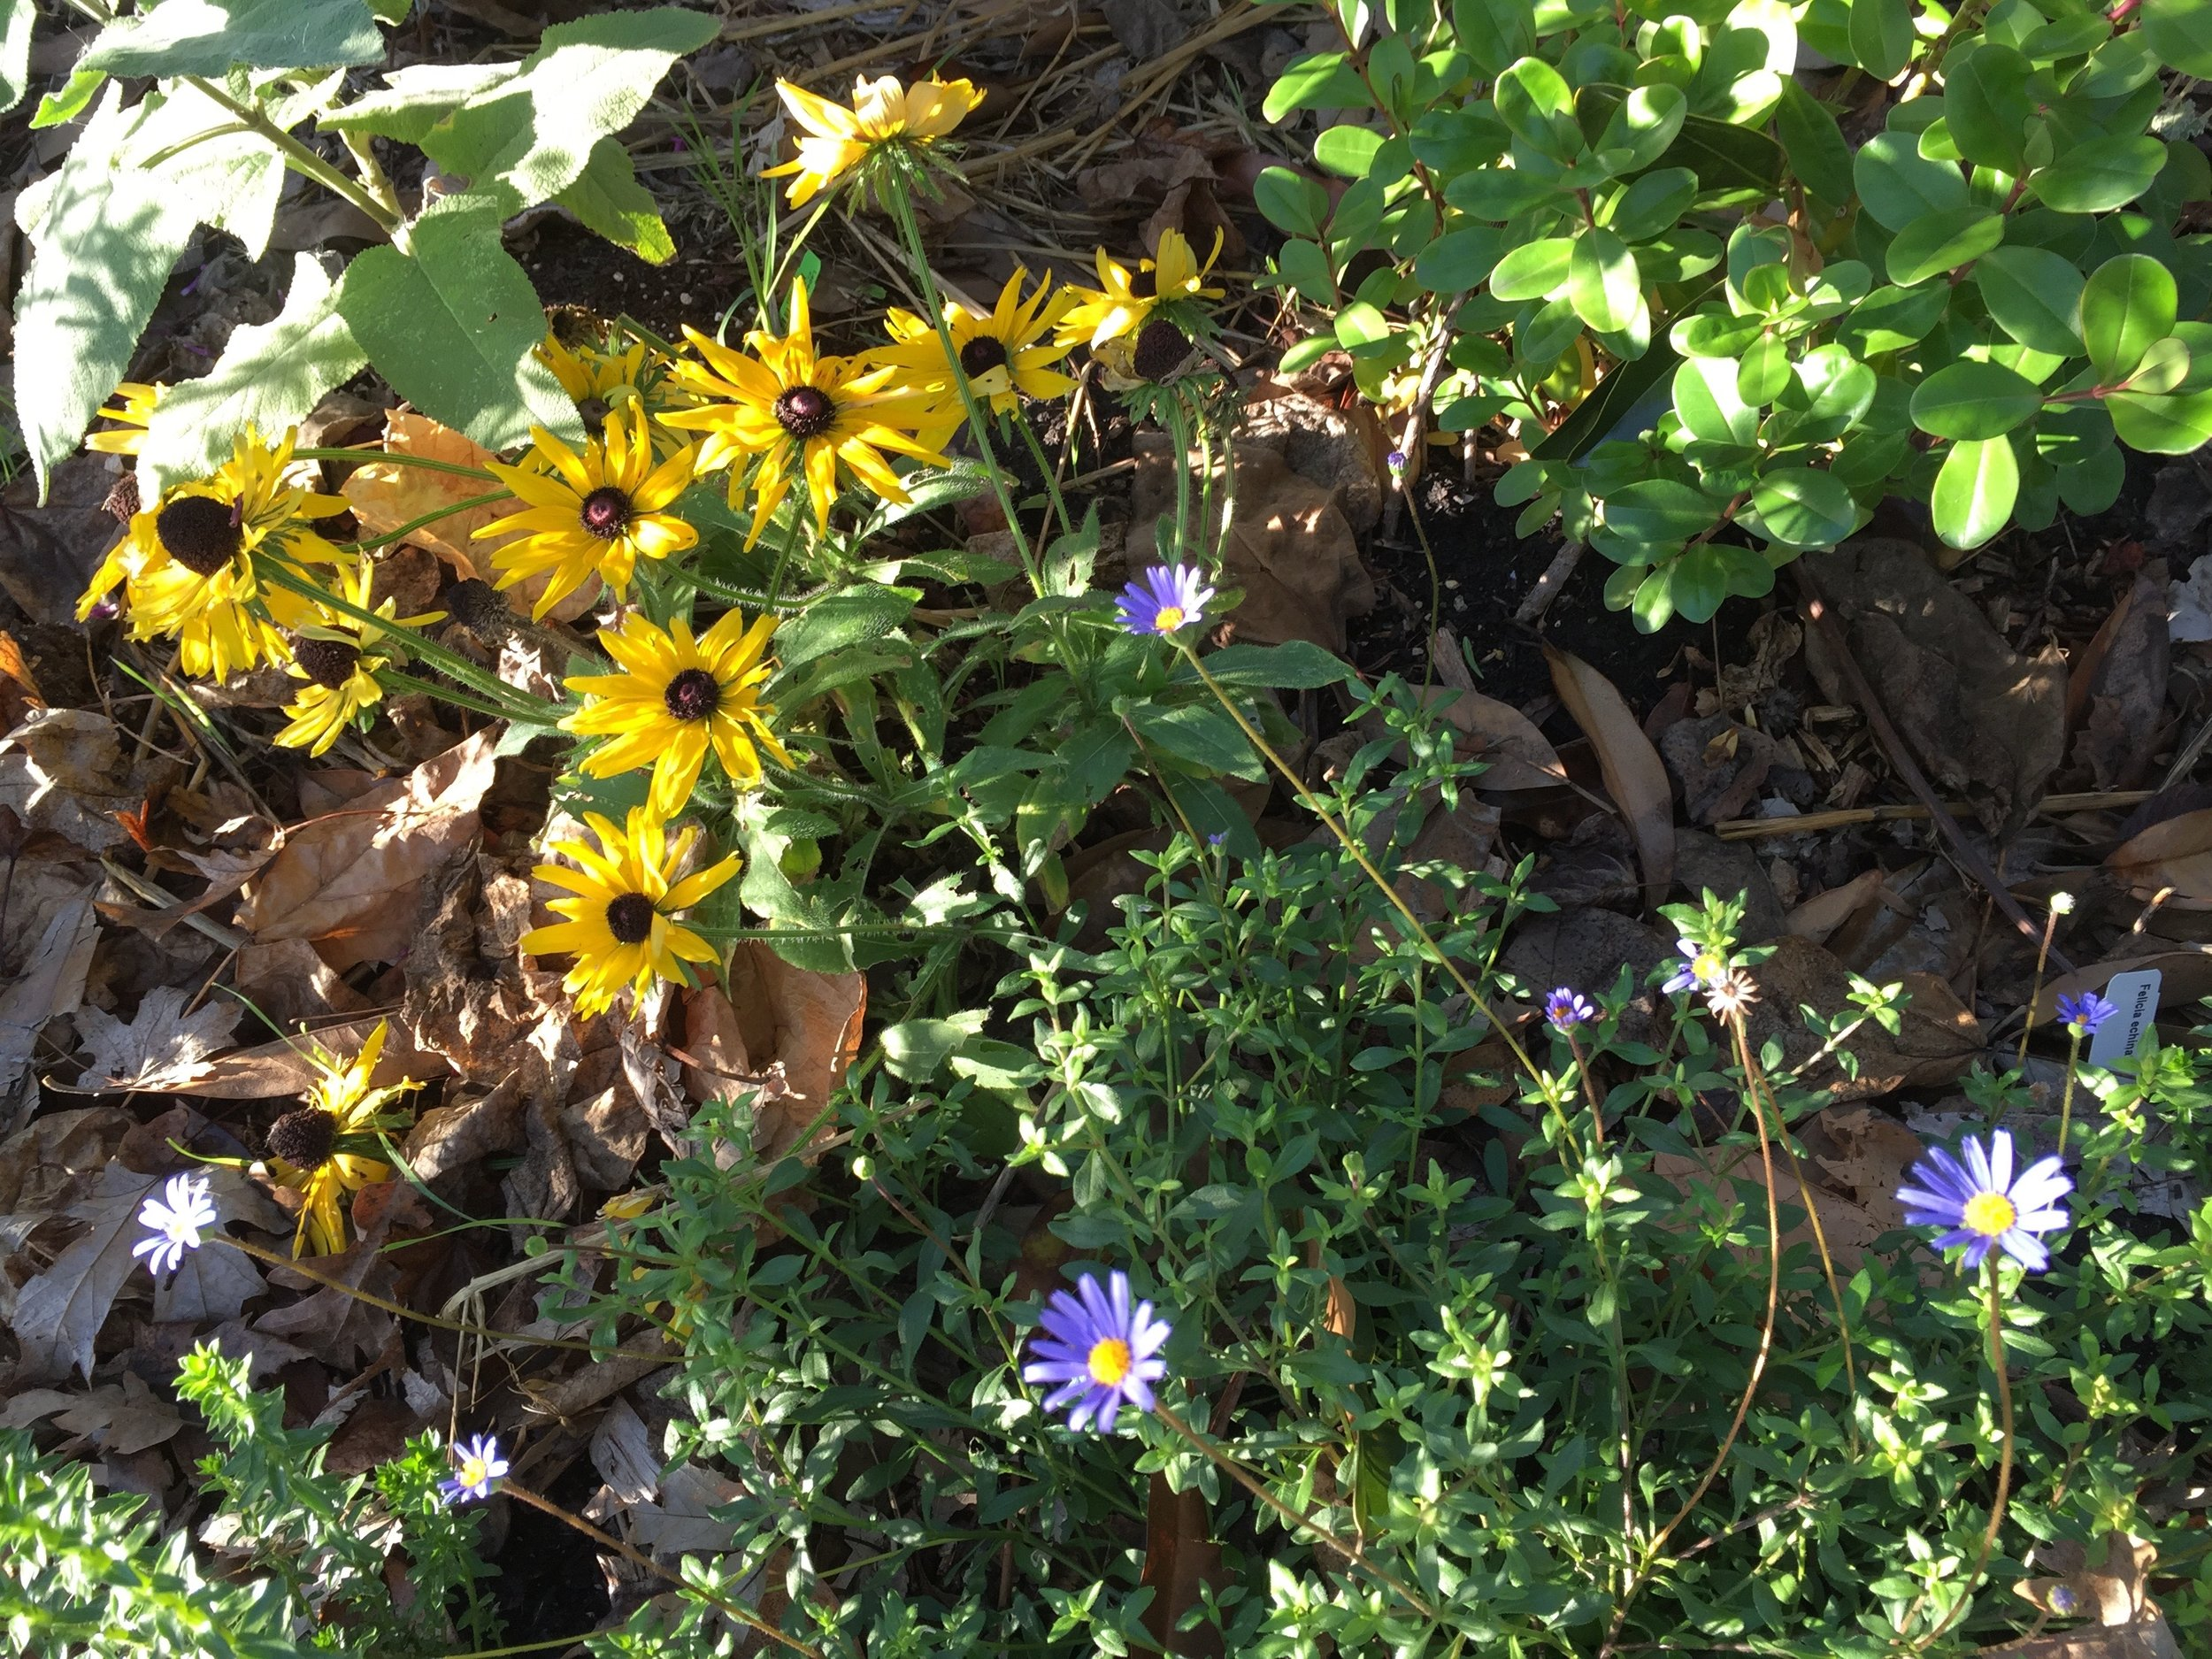 Some flowers are not minding the cold - the yellow is  Rudbeckia hirta  and the purple is  Felicia echinata .